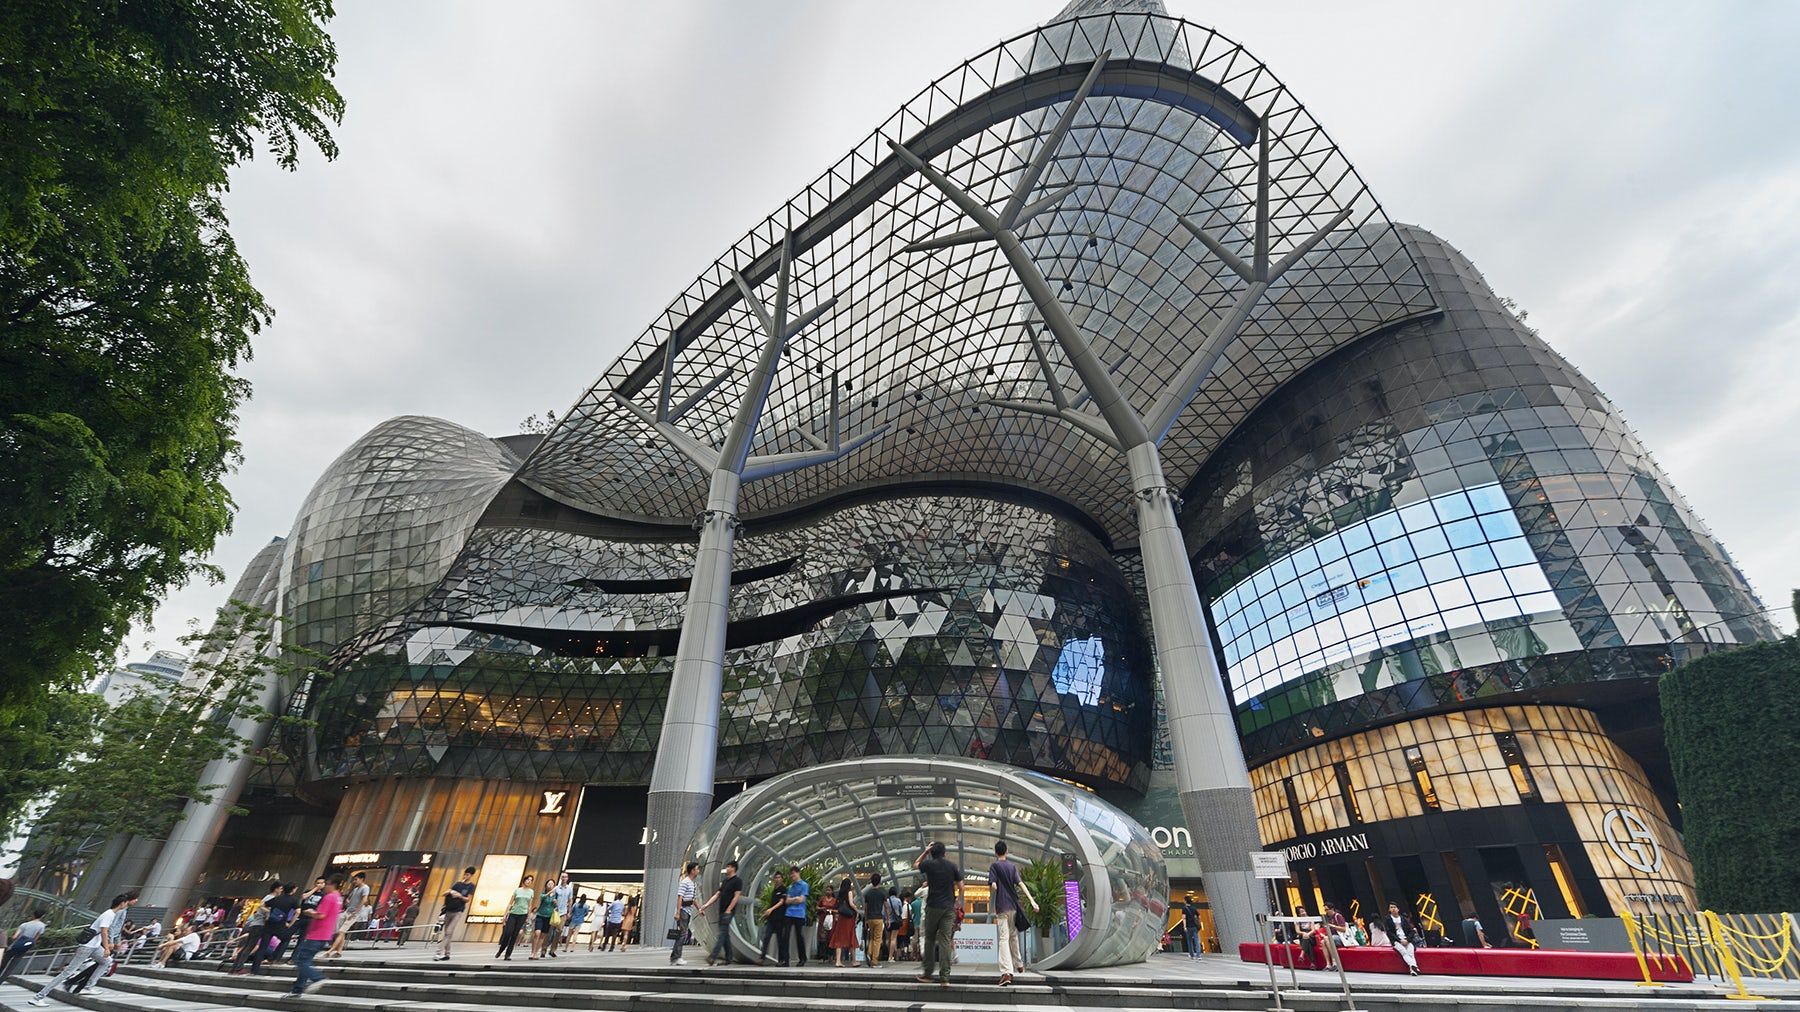 Orchard shopping mall in Singapore | Source: Shutterstock